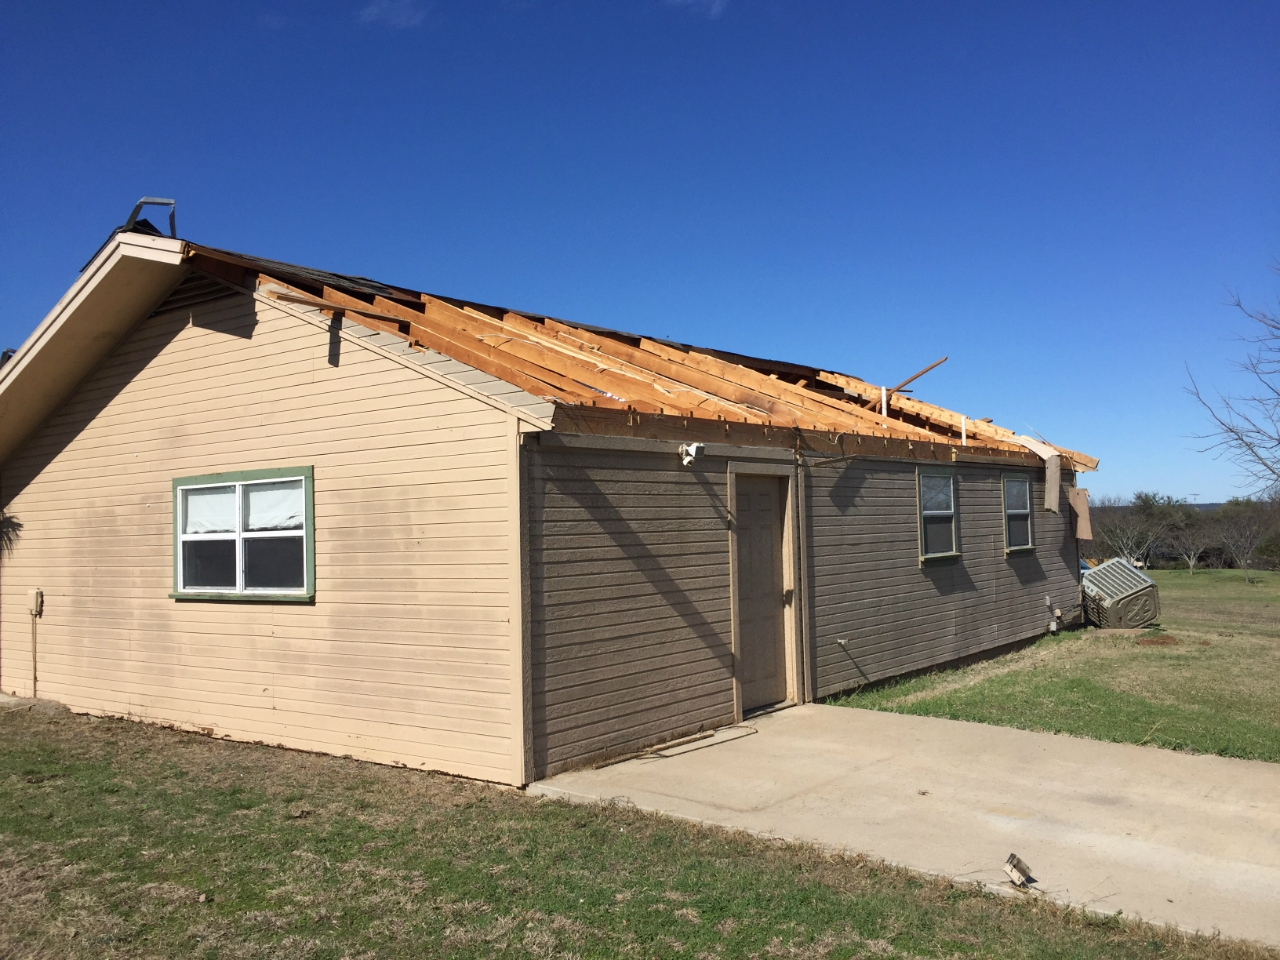 Tornado damage in Bosque County